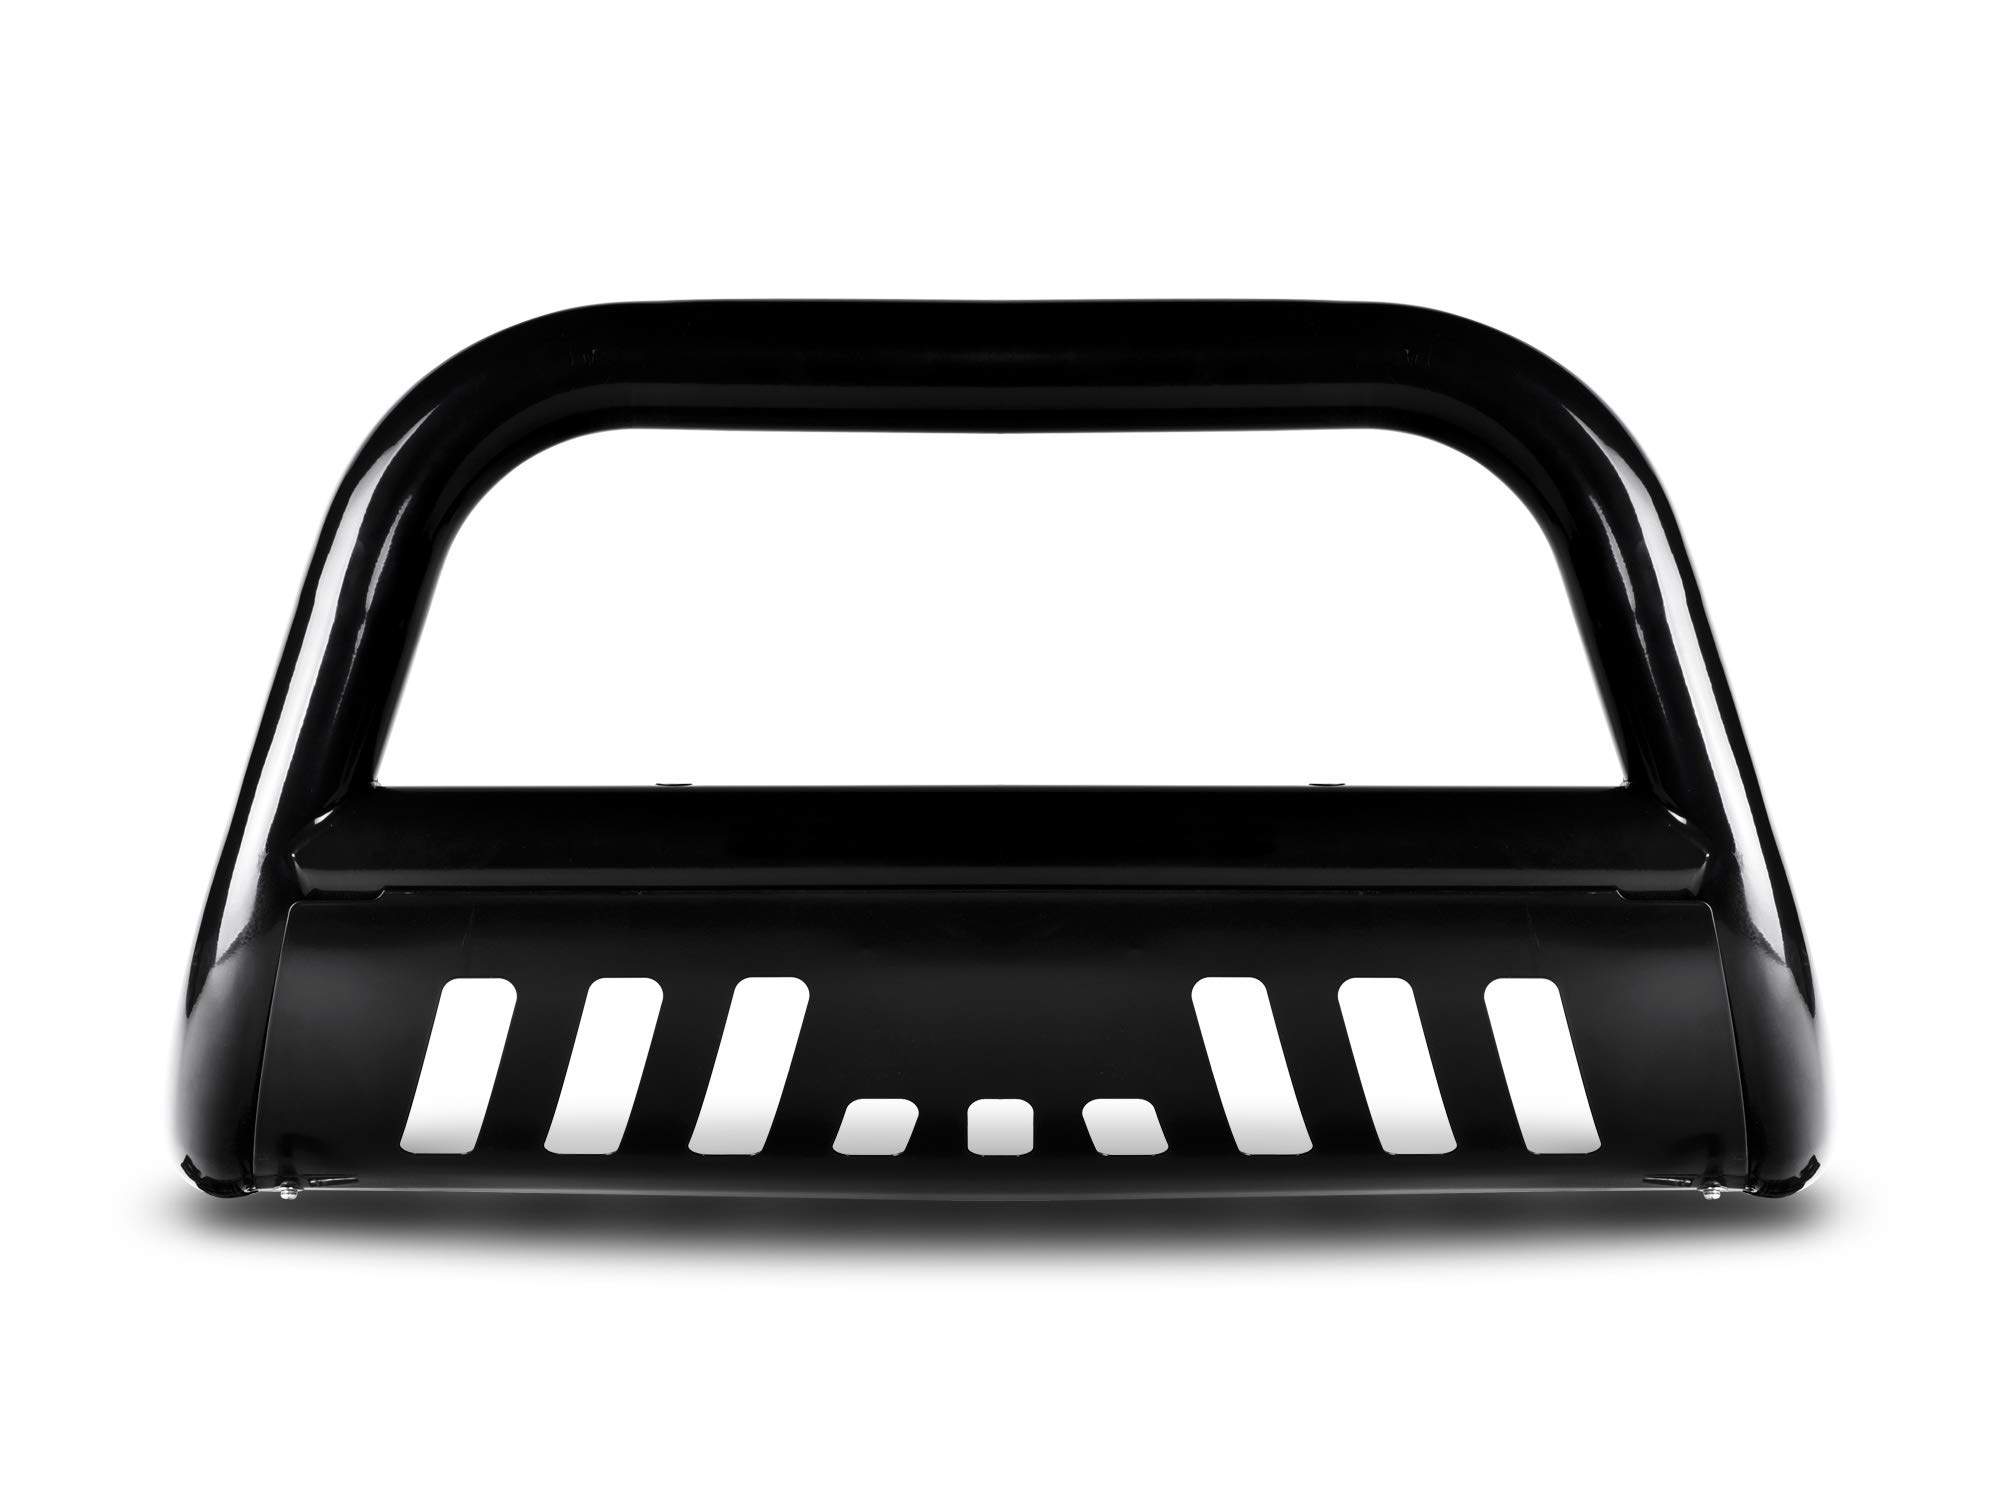 Armordillo USA 7144156 Classic Bull Bar Fits 2006-2010 Hummer H3 - Black